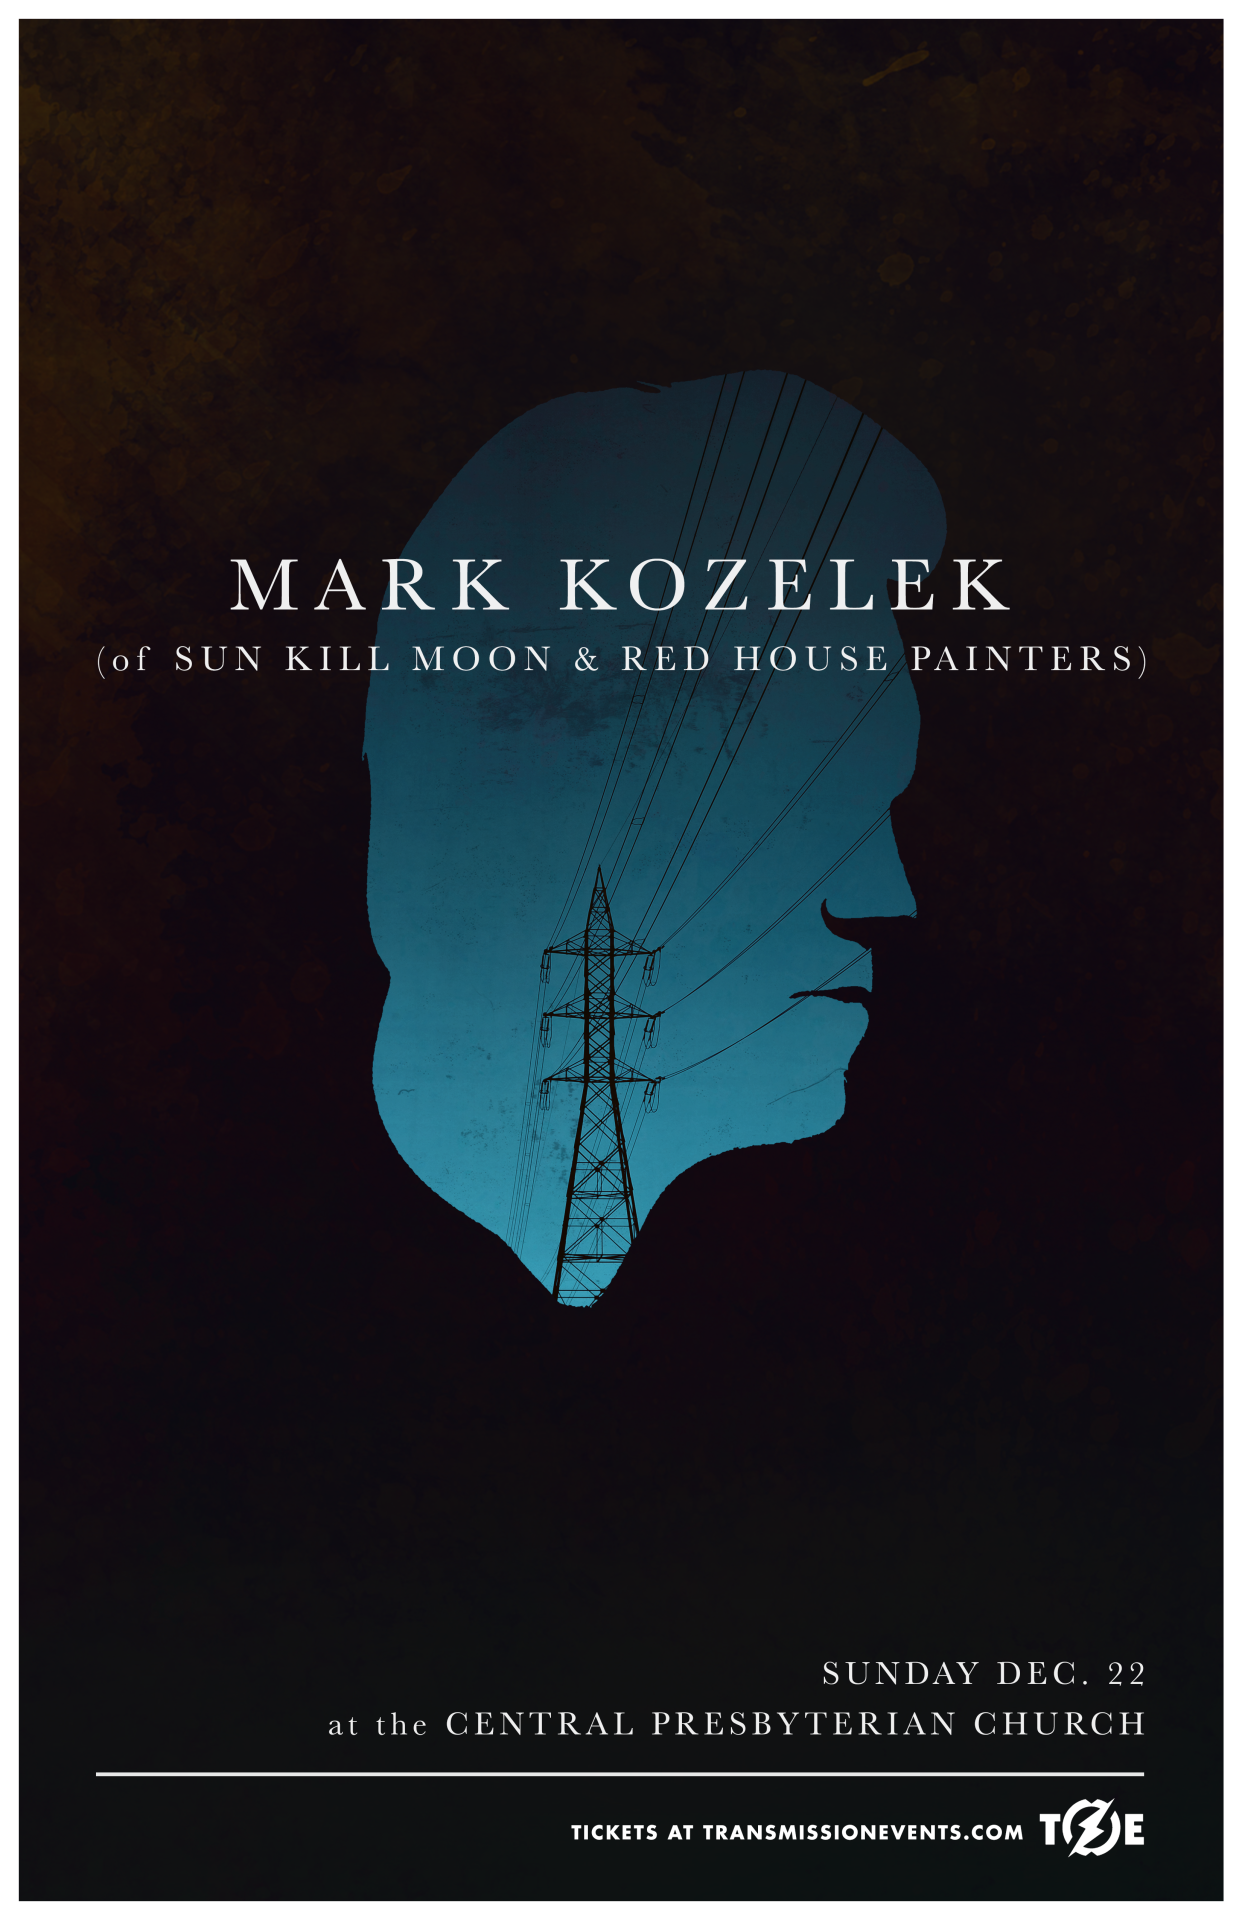 Latest poster for Mark Kozelek